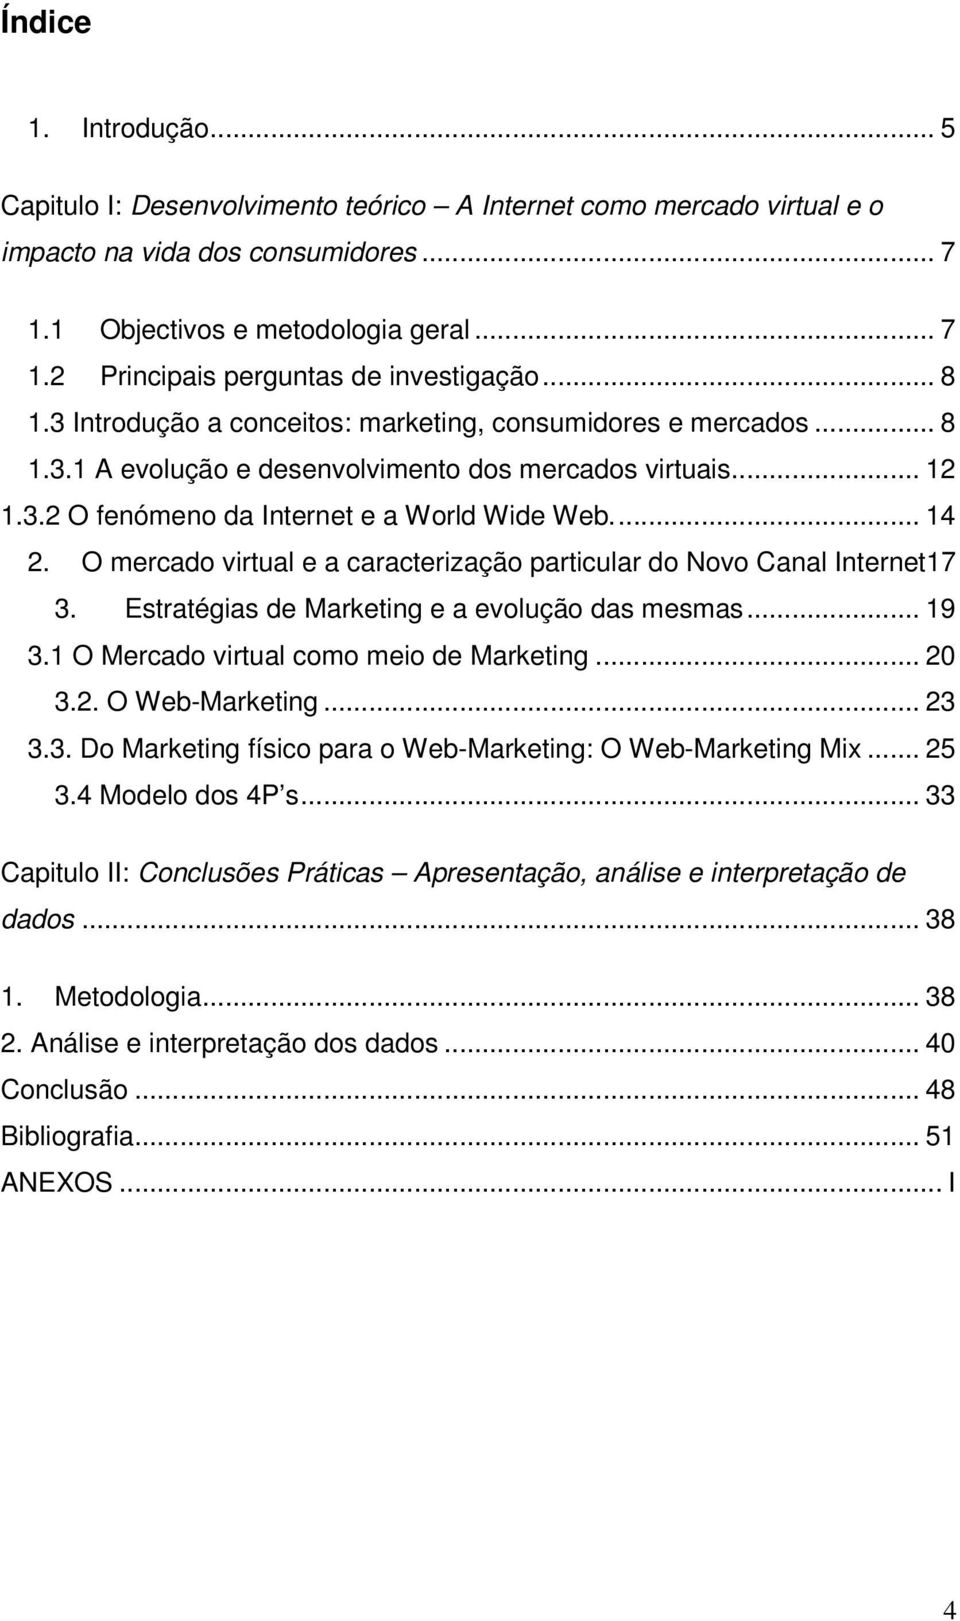 O mercado virtual e a caracterização particular do Novo Canal Internet17 3. Estratégias de Marketing e a evolução das mesmas... 19 3.1 O Mercado virtual como meio de Marketing... 20 3.2. O Web-Marketing.